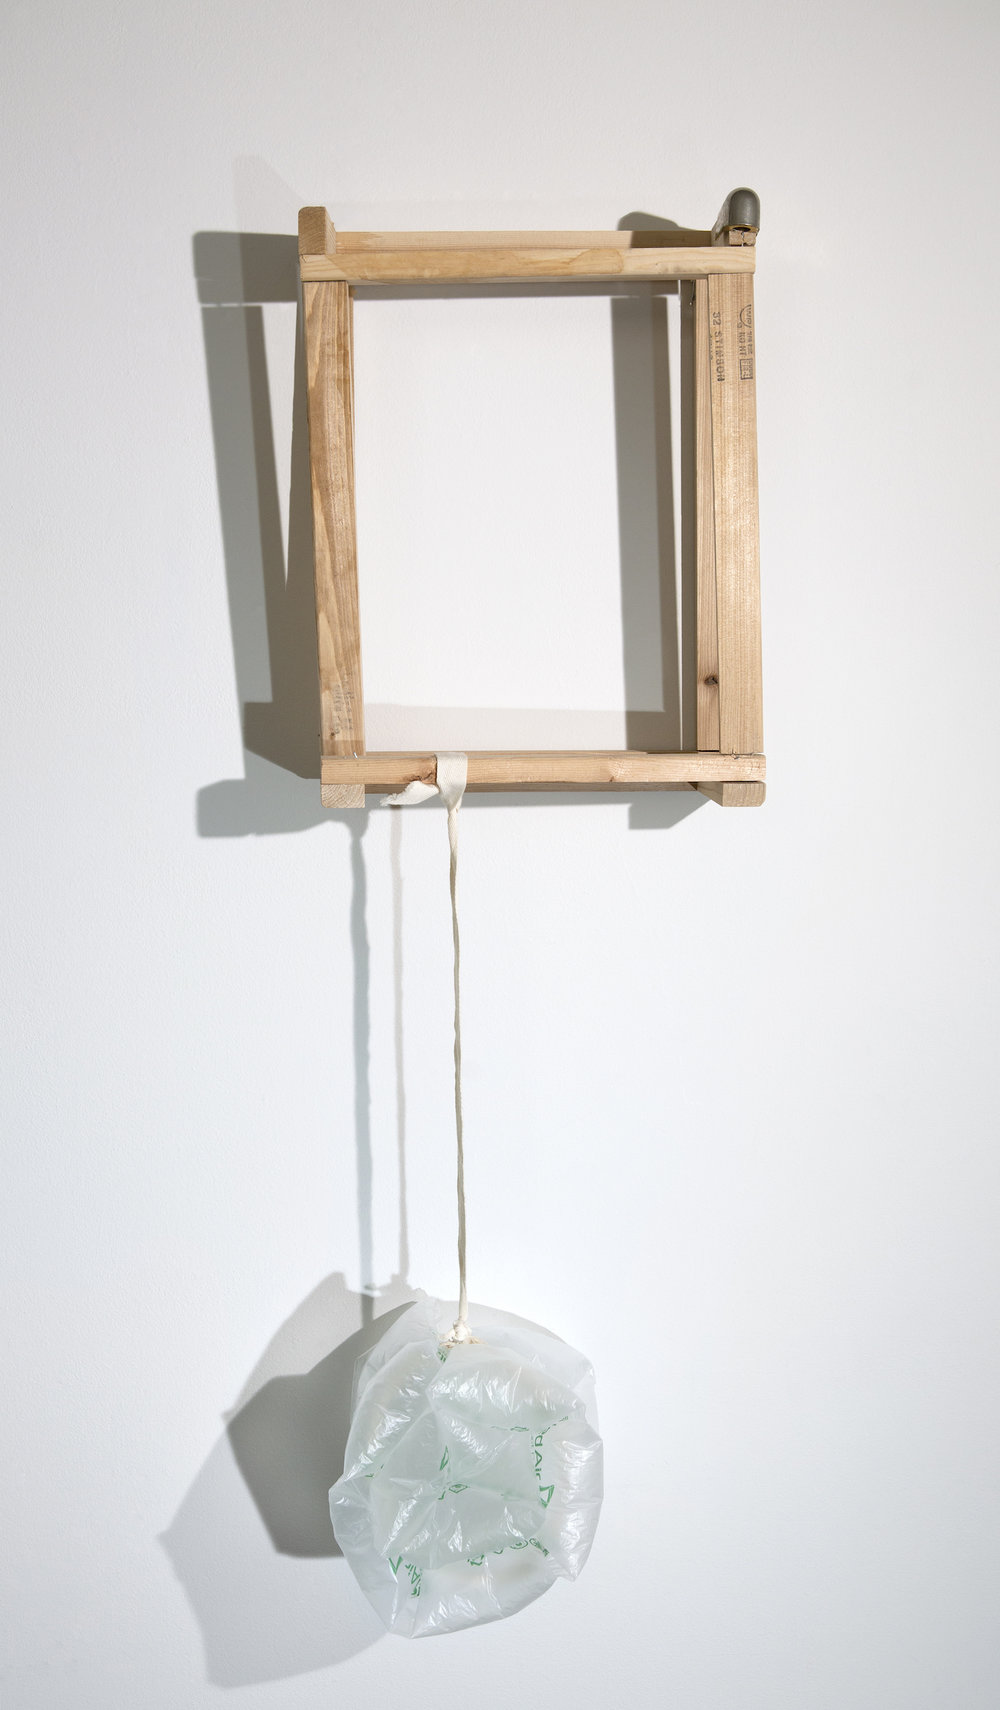 The burden    Found wooden frame and metal cap, used canvas tie and air bubble cushion, and T-pin  Approx. 39 x 13 x 10 inches